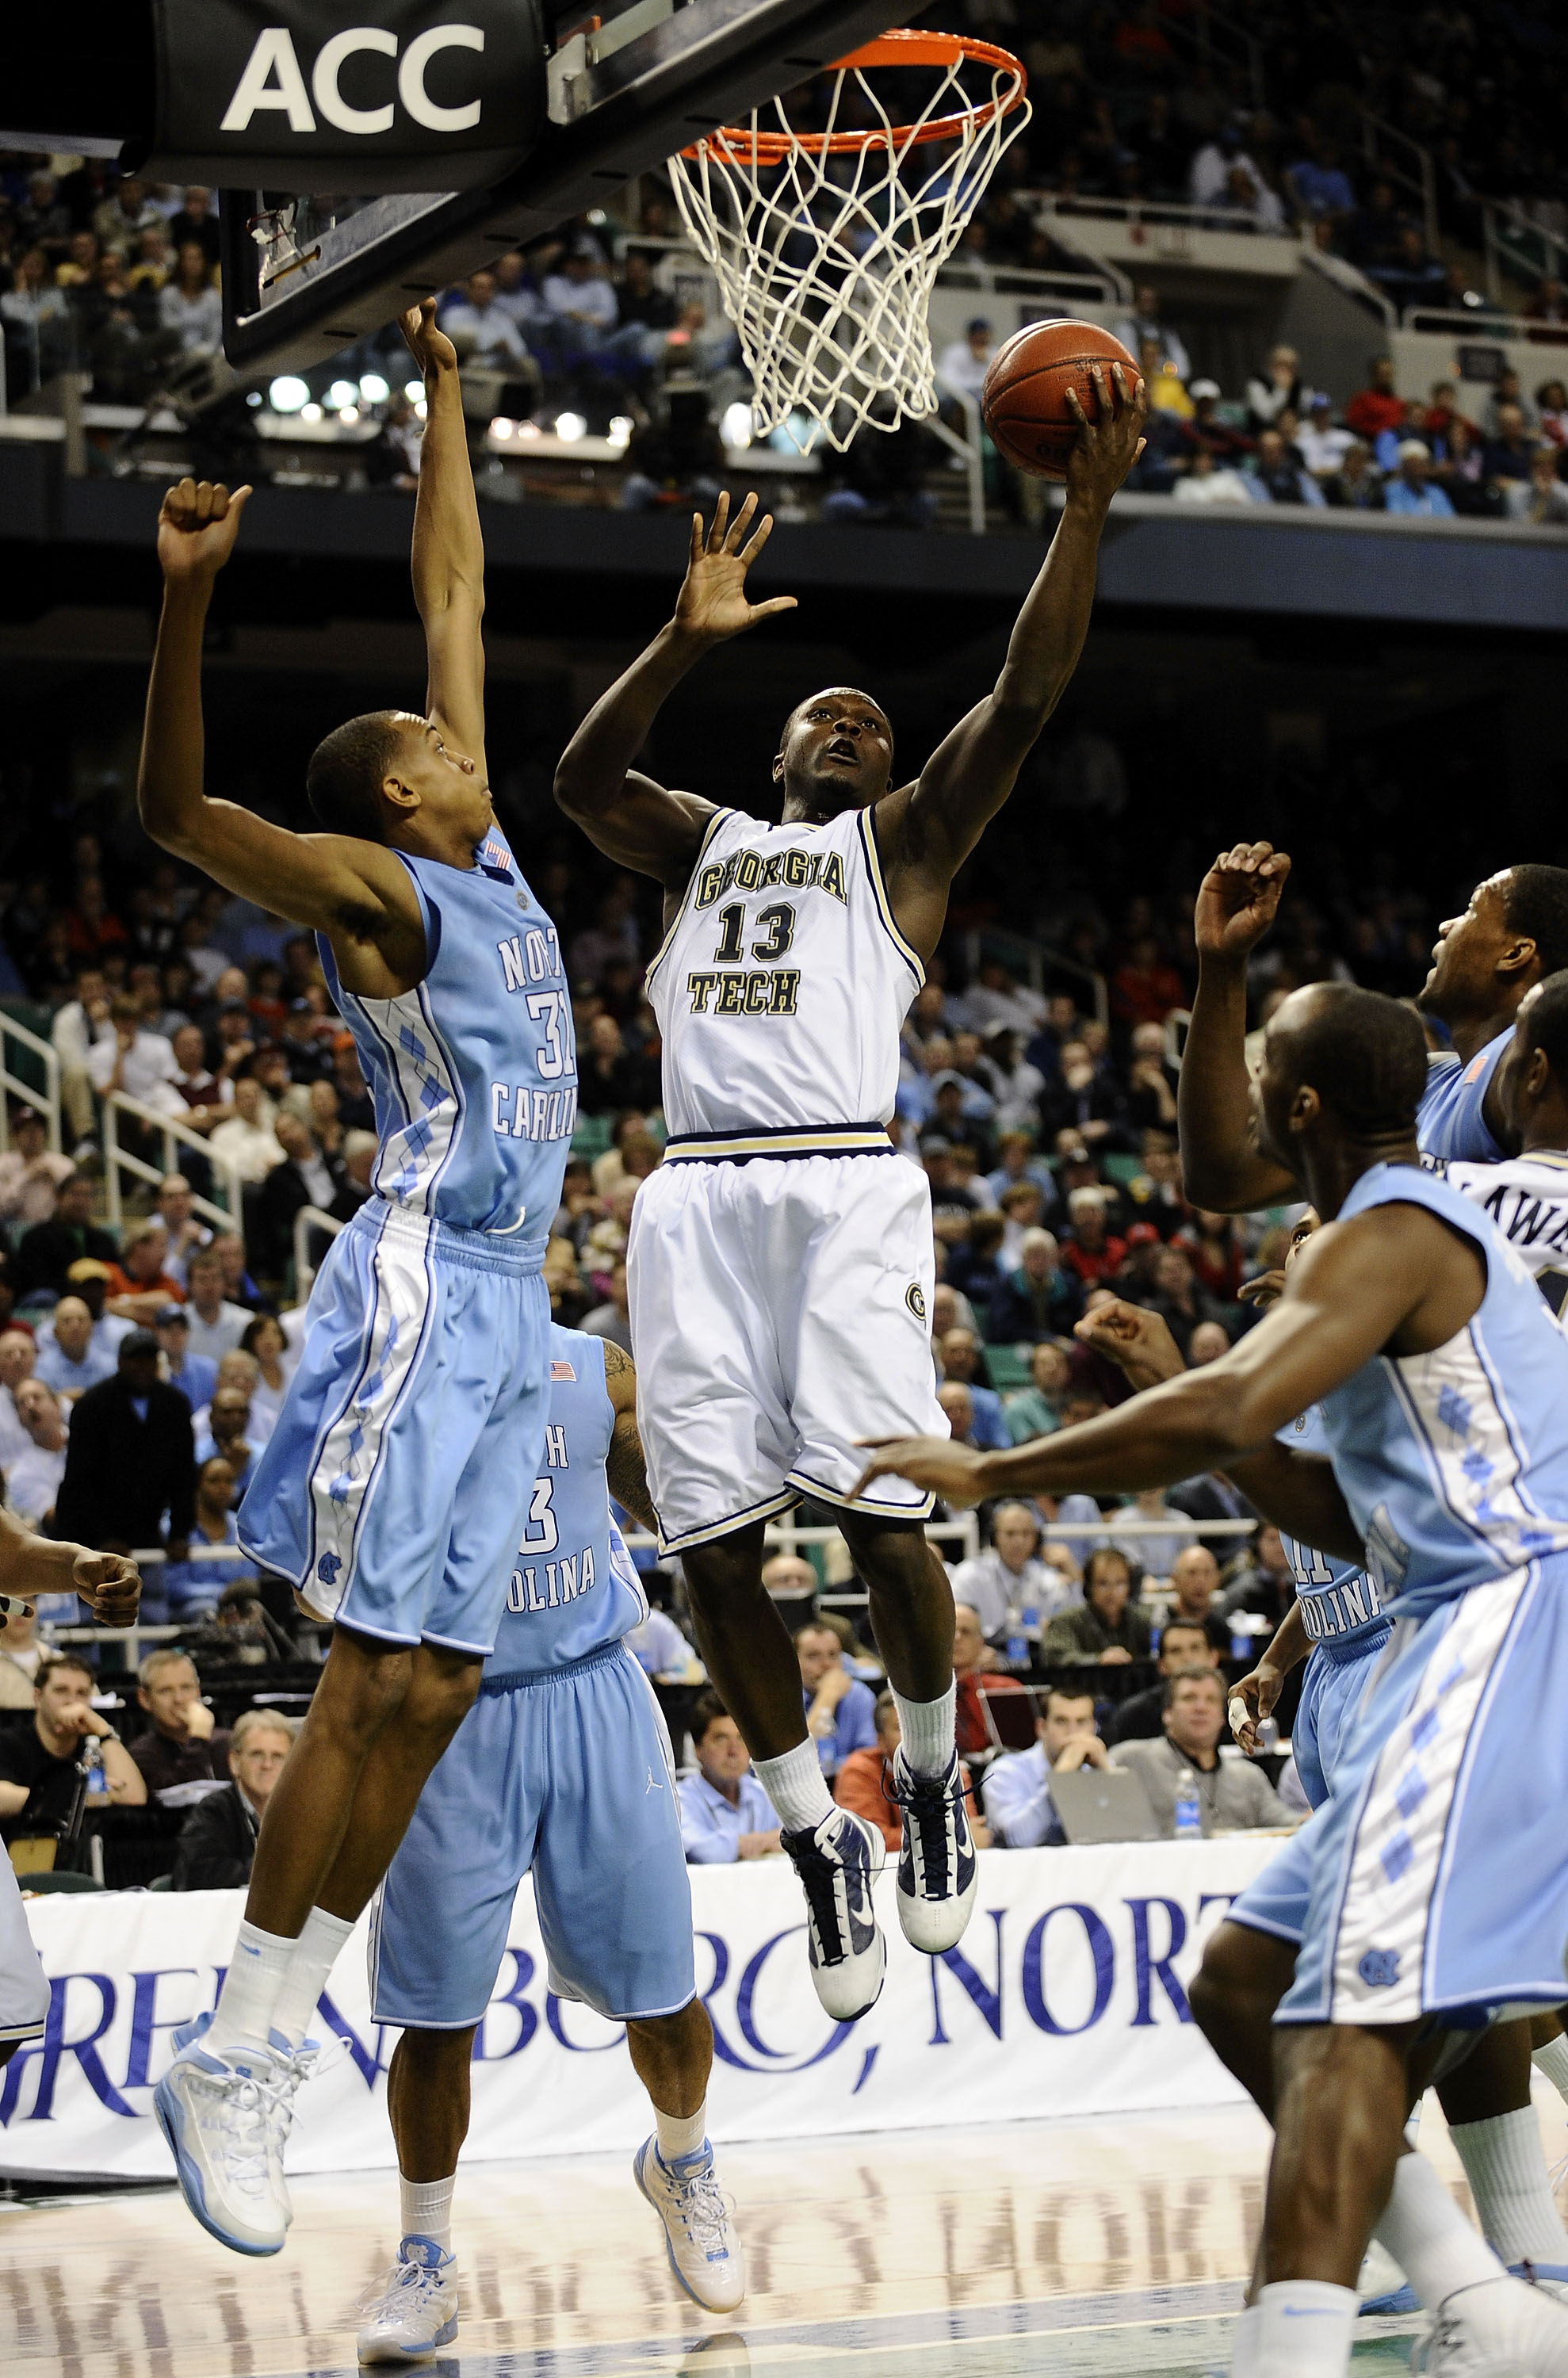 GREENSBORO, NC - MARCH 11:  D'Andre Bell #13 of the Georgia Tech Yellow Jackets drive to the hoop by John Henson #31 of the University of the North Carolina Tarheels in their first round game in the 2010 ACC Men's Basketball Tournament at the Greensboro C